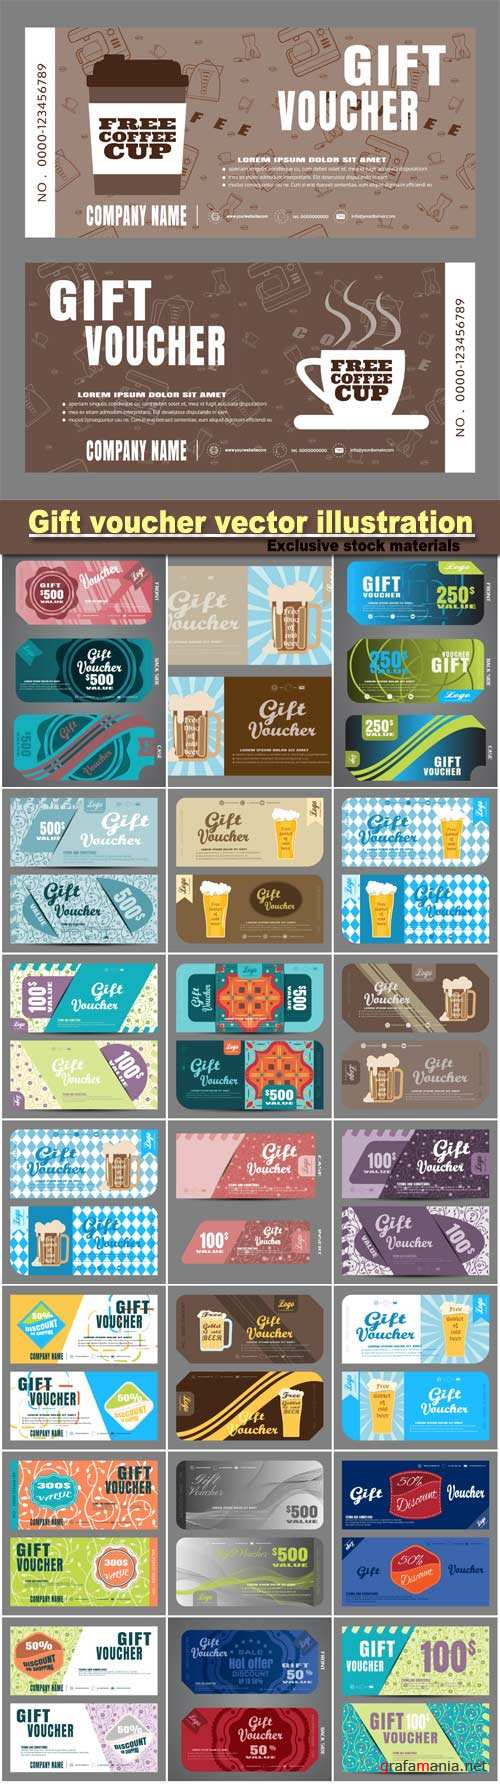 Gift voucher vector illustration to increase the sales